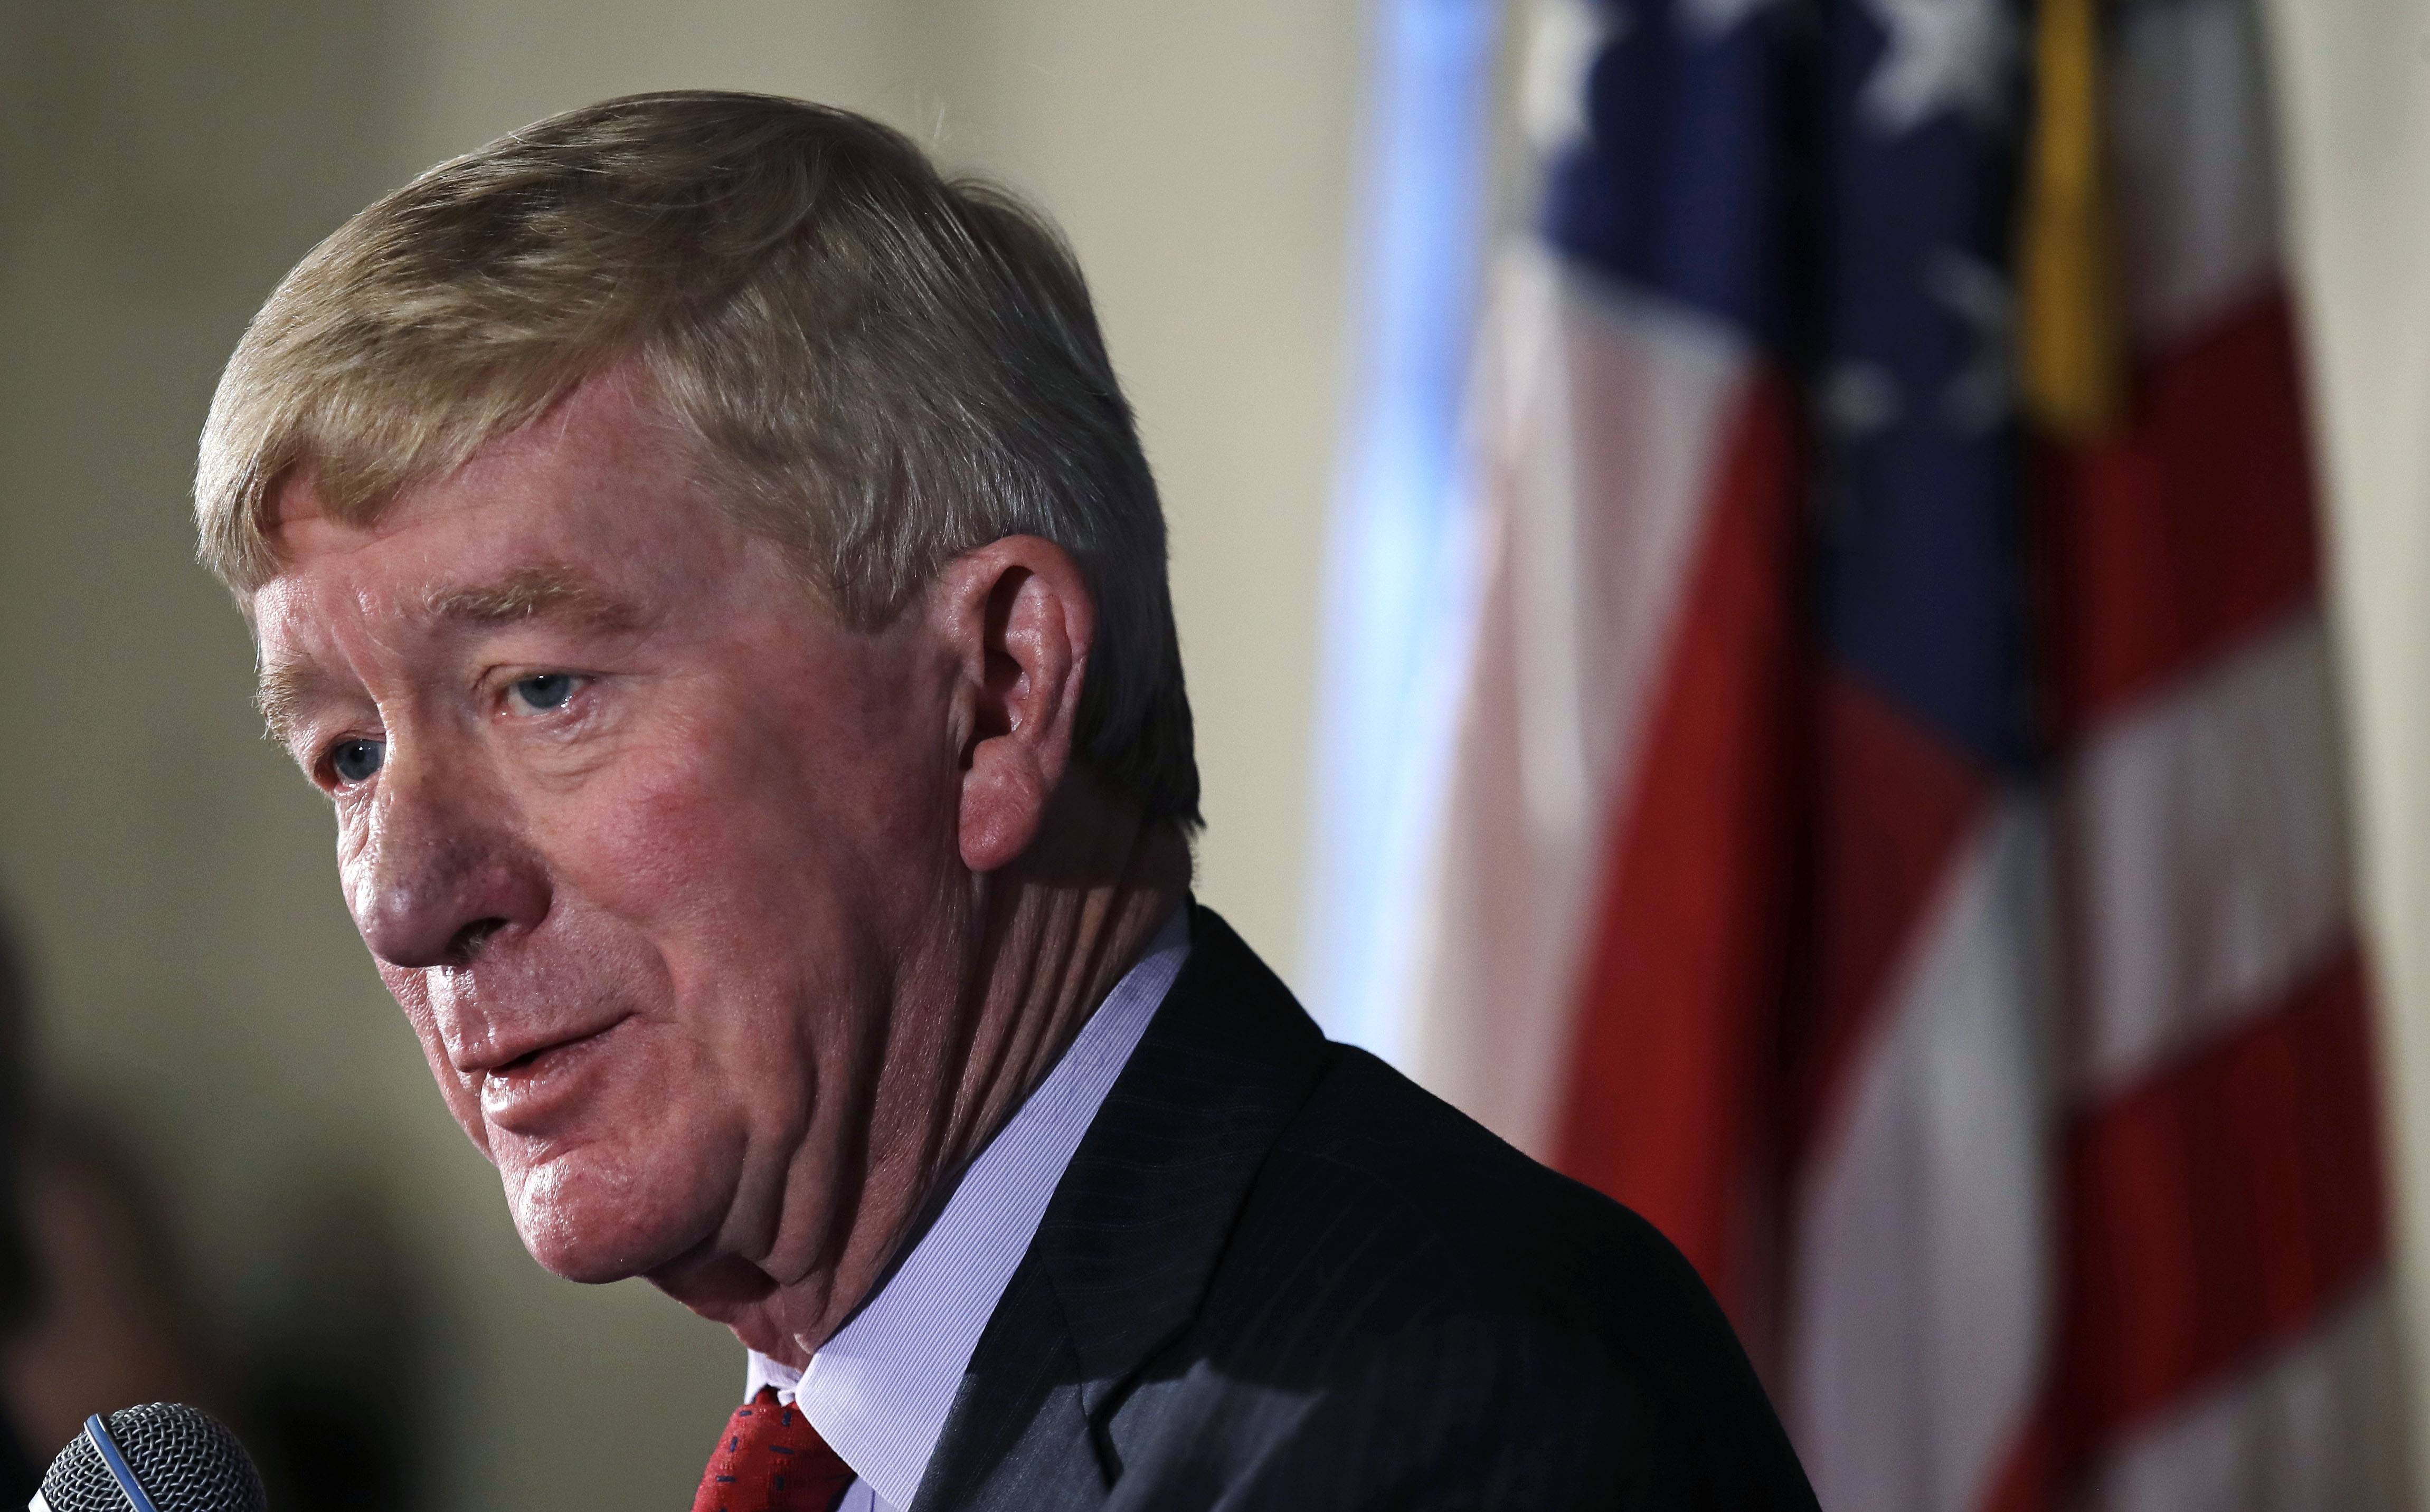 Former Massachusetts Gov. William Weld addresses a gathering Friday during a New England Council 'Politics & Eggs' breakfast in Bedford, New Hampshire. Weld announced he's creating a presidential exploratory committee for a run in the 2020 election. (AP Photo/Charles Krupa)